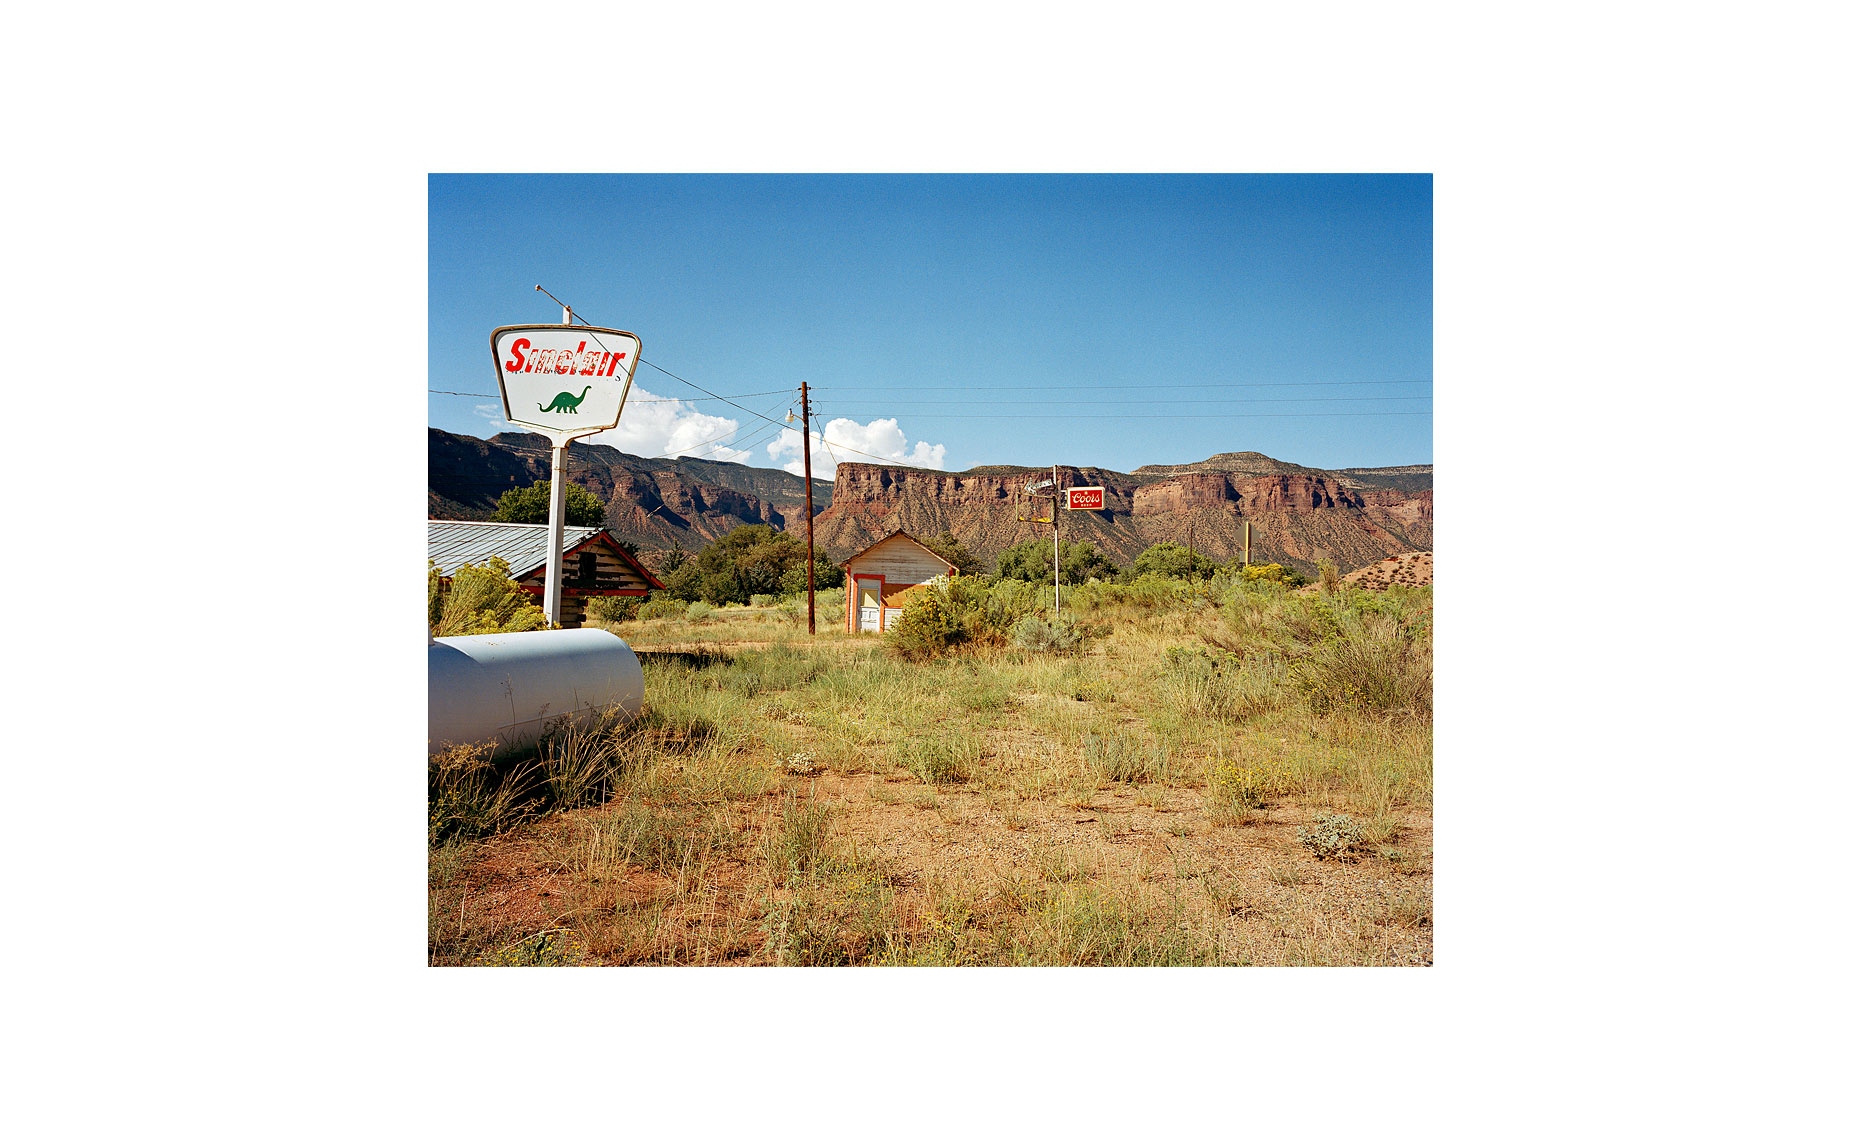 This Was What There Was | Sinclair Oil. Gateway, Colorado. September 2005